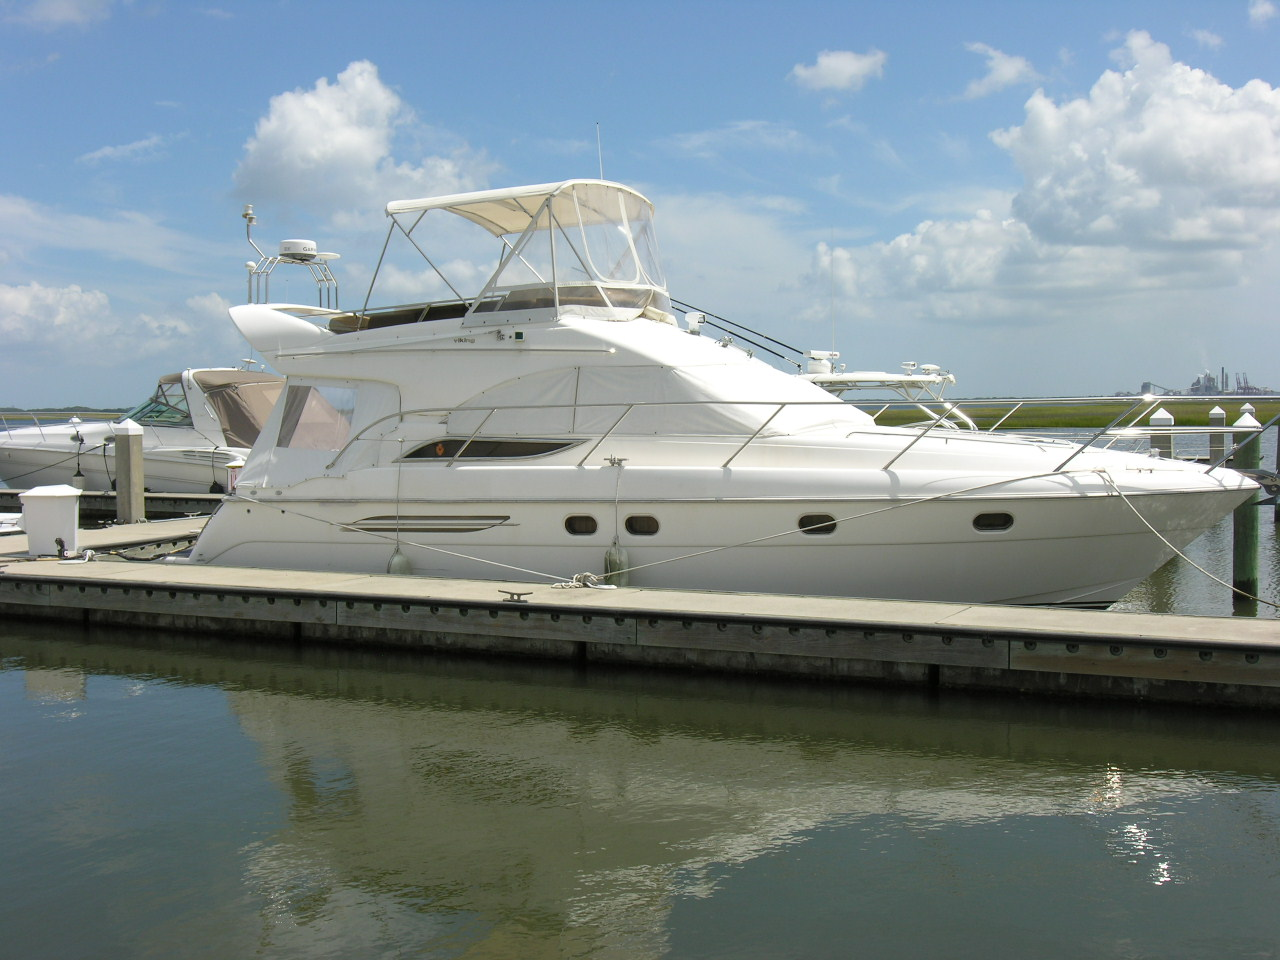 We have a new listing to offer our customers, this 2000 Viking Motor Yacht.